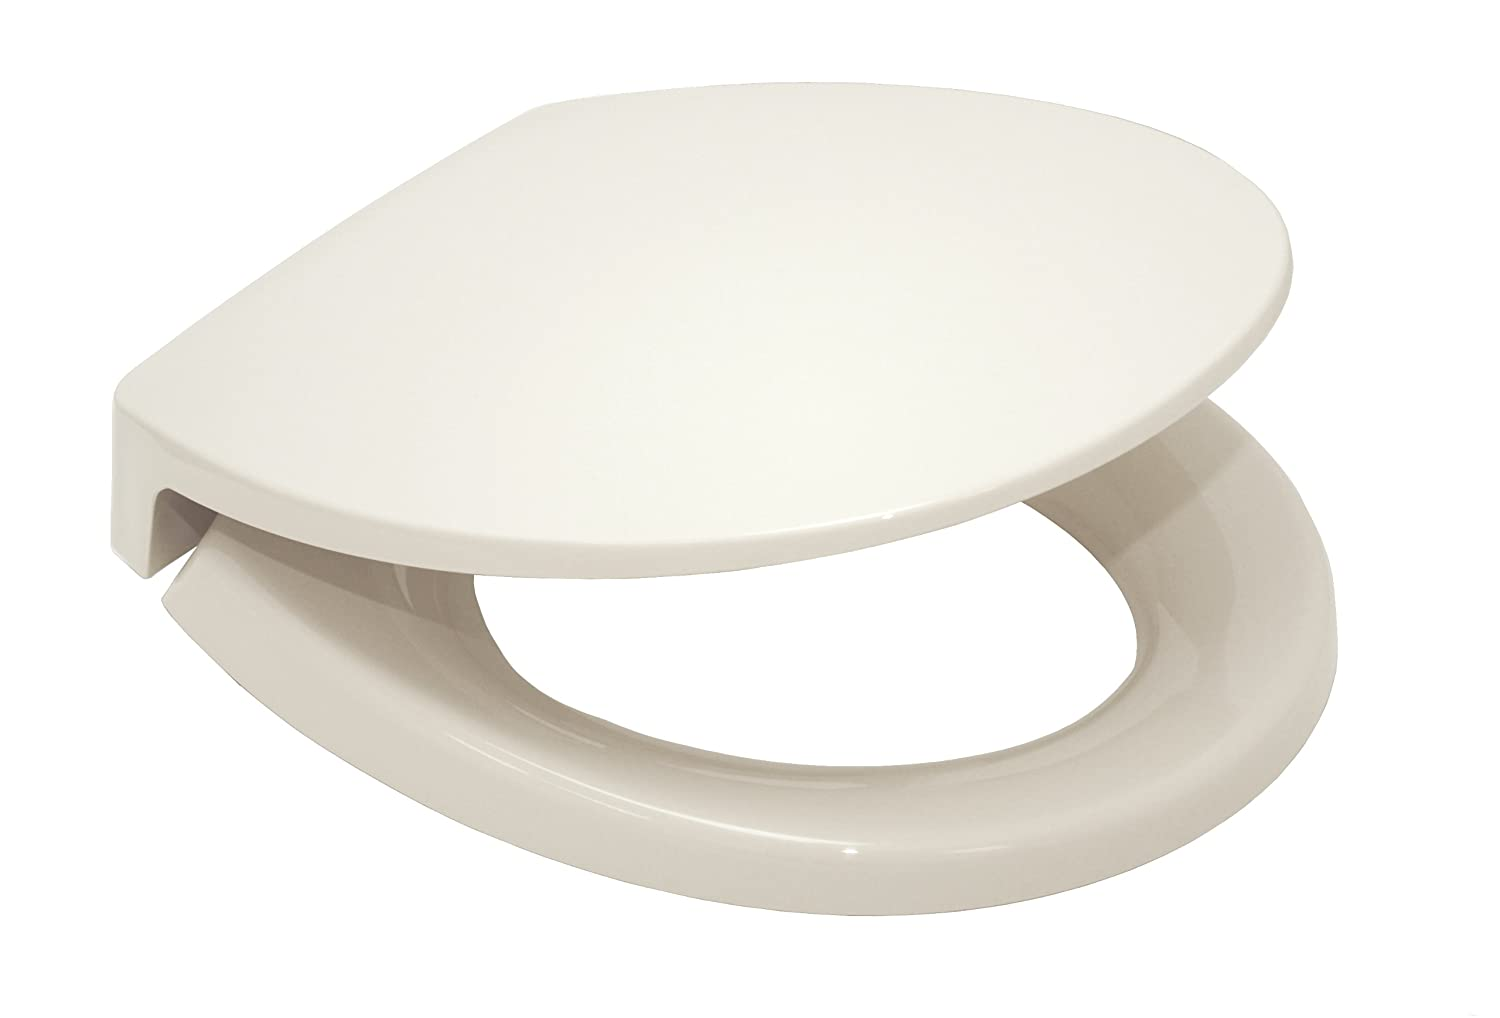 TOTO SS113#11 Transitional SoftClose Round Toilet Seat, Colonial ...